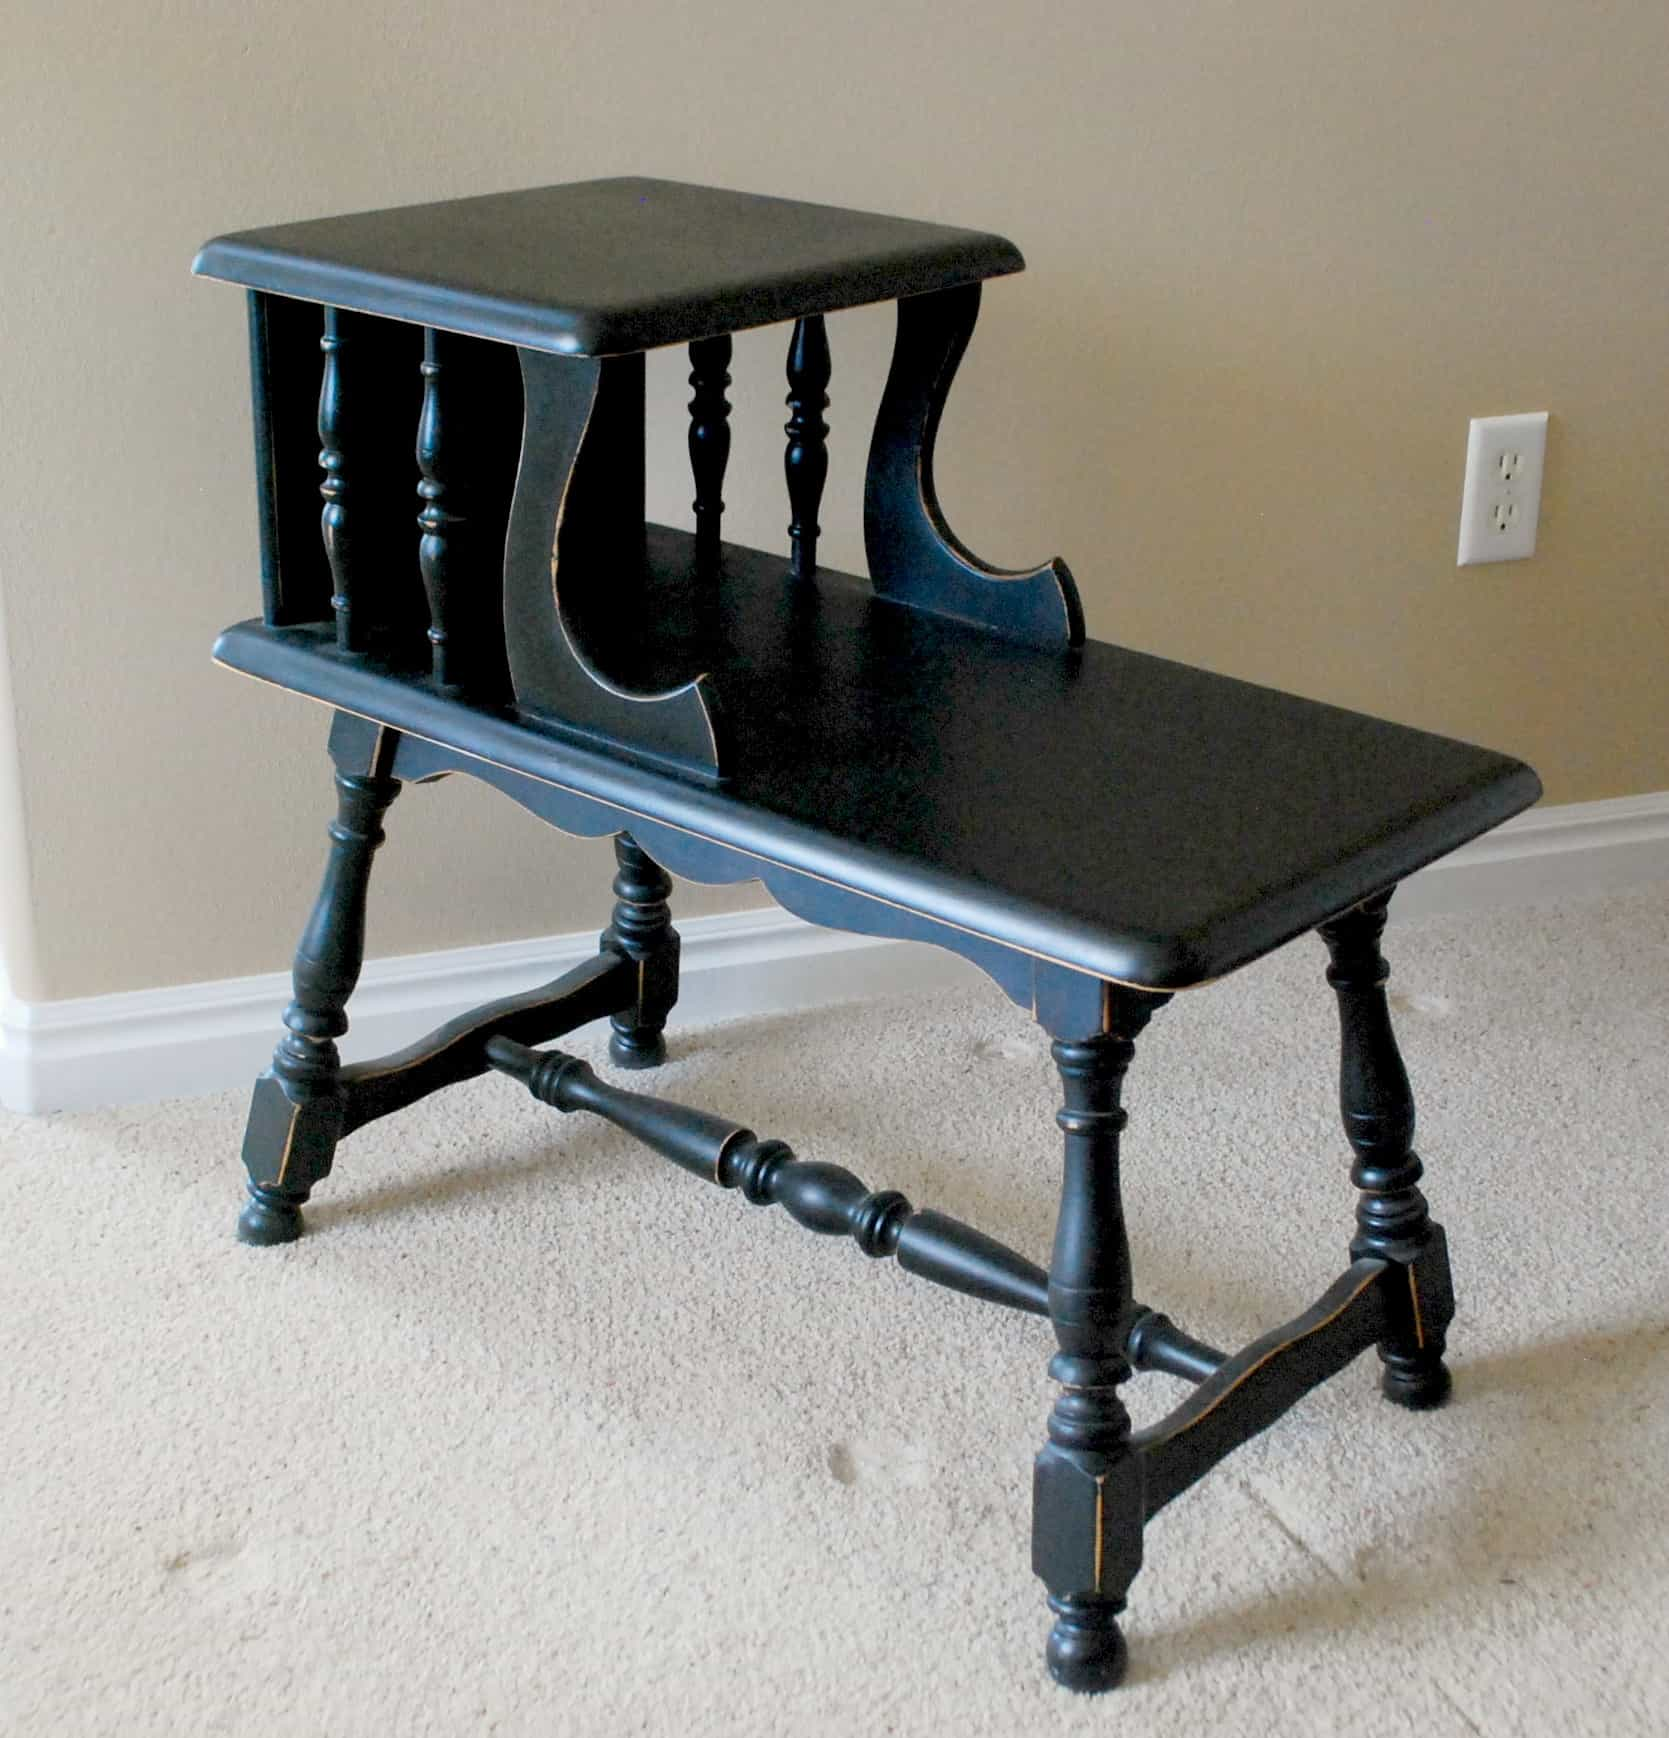 diy furniture refinishing spray paint style. Black Bedroom Furniture Sets. Home Design Ideas